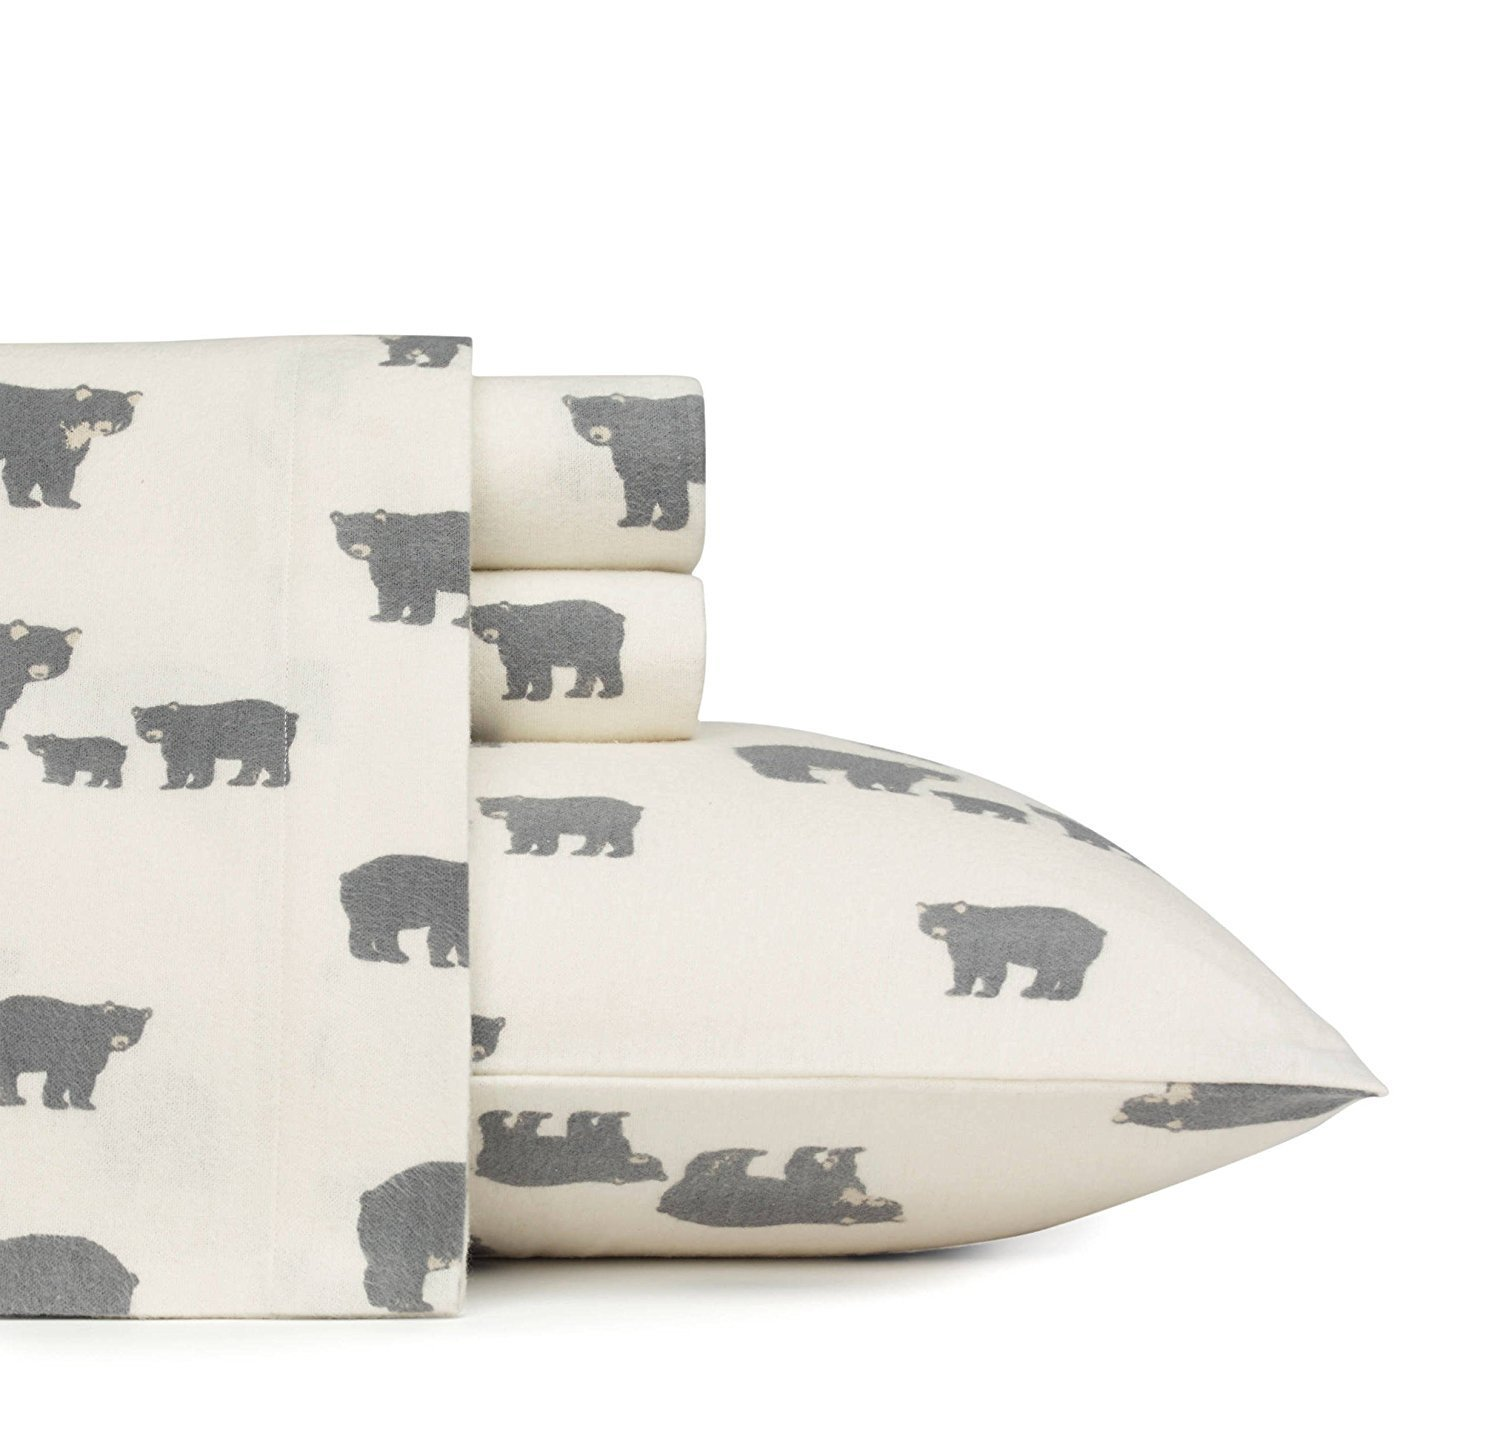 MISC 4pc Ivory Cozy Black Wild Bears Theme Sheets King Set, Cotton Flannel,, Fully Elasticized Fitted, Animal Lodge Cottage, Deep Pocket, Southwestern